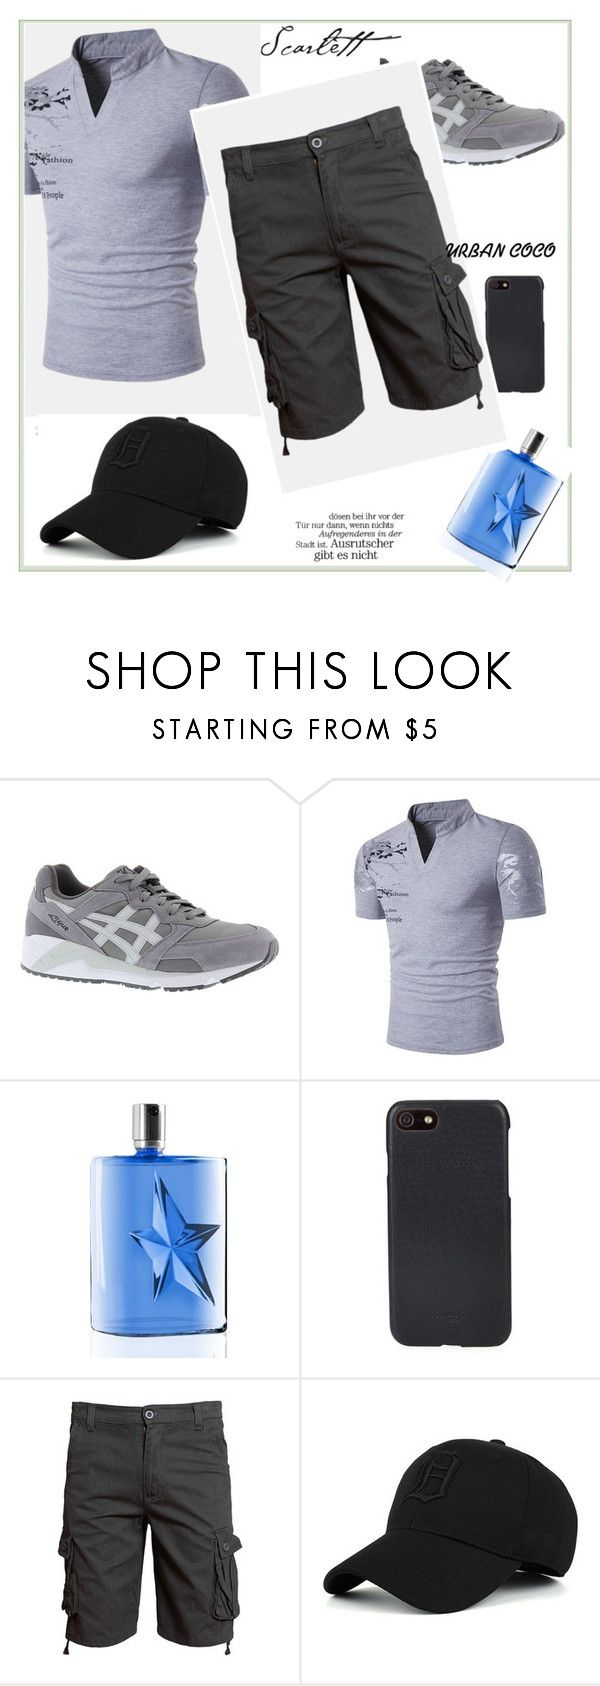 """Style for men #49"" by infinity-em ❤ liked on Polyvore featuring Asics, Thierry Mugler, Shinola, men's fashion and menswear"